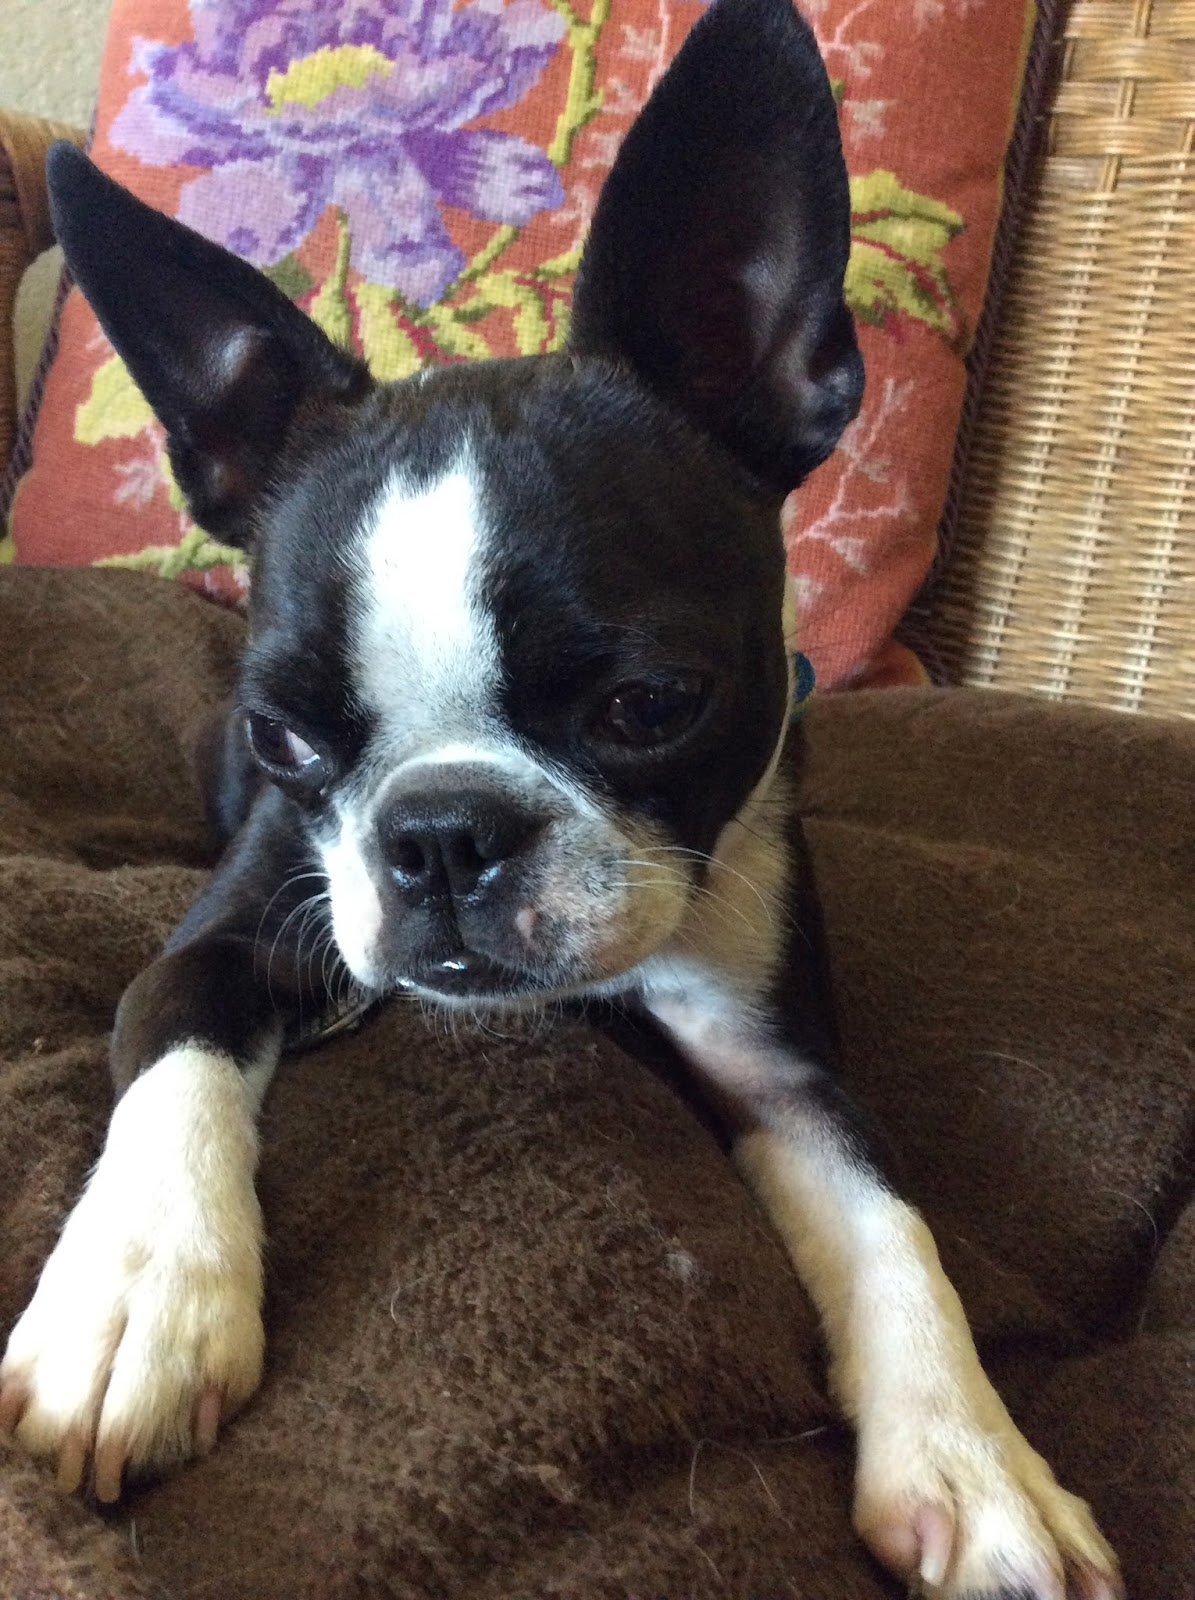 Sinead the Boston terrier on her couch